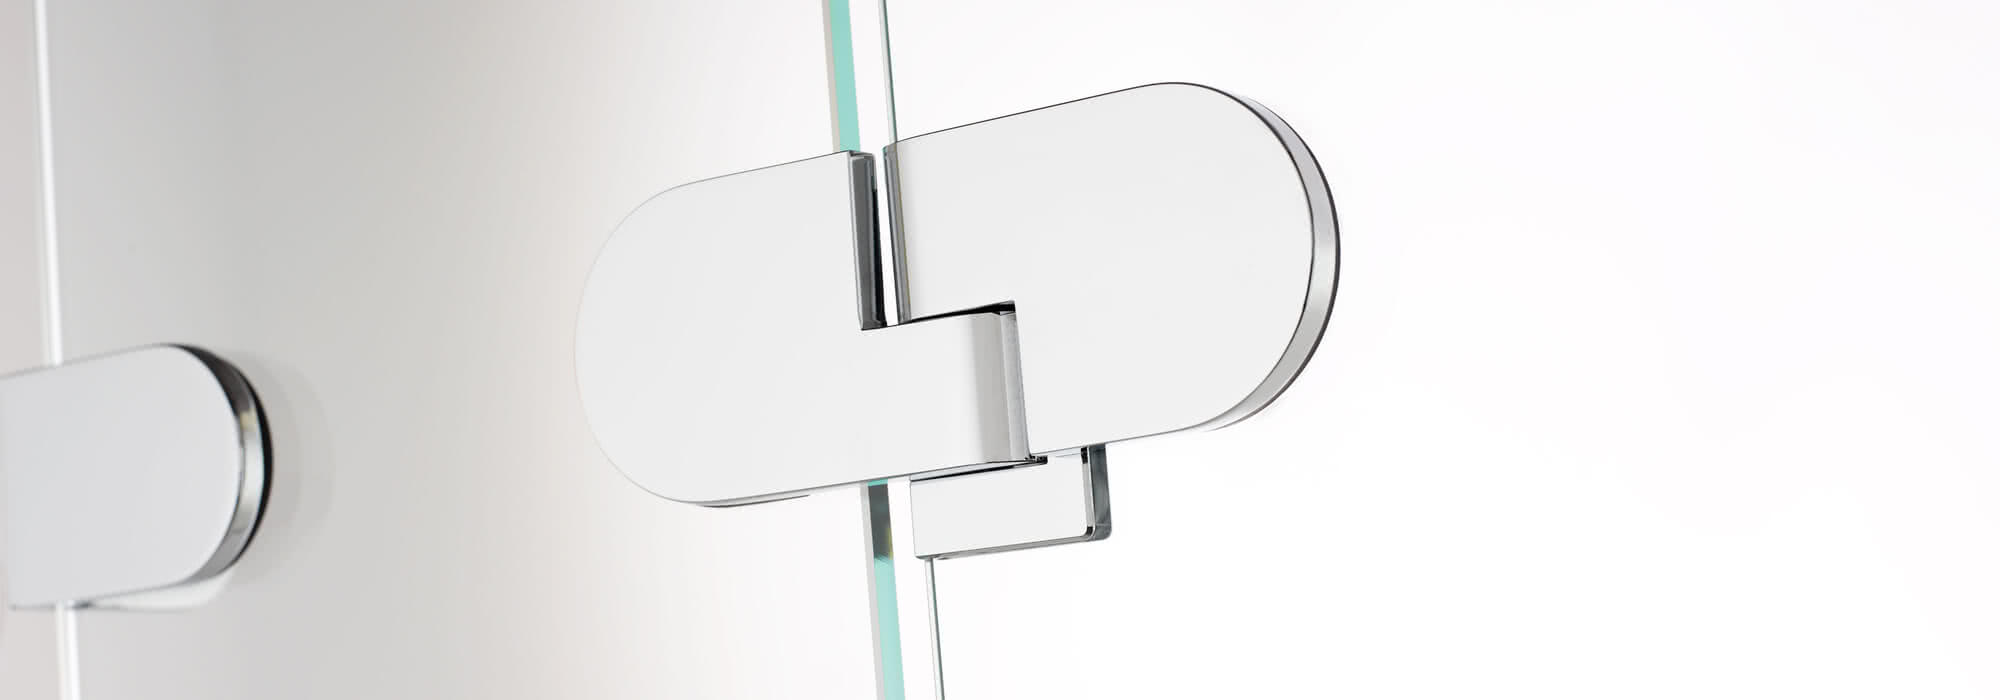 Spinell Plus, glass–glass hinge, exterior view